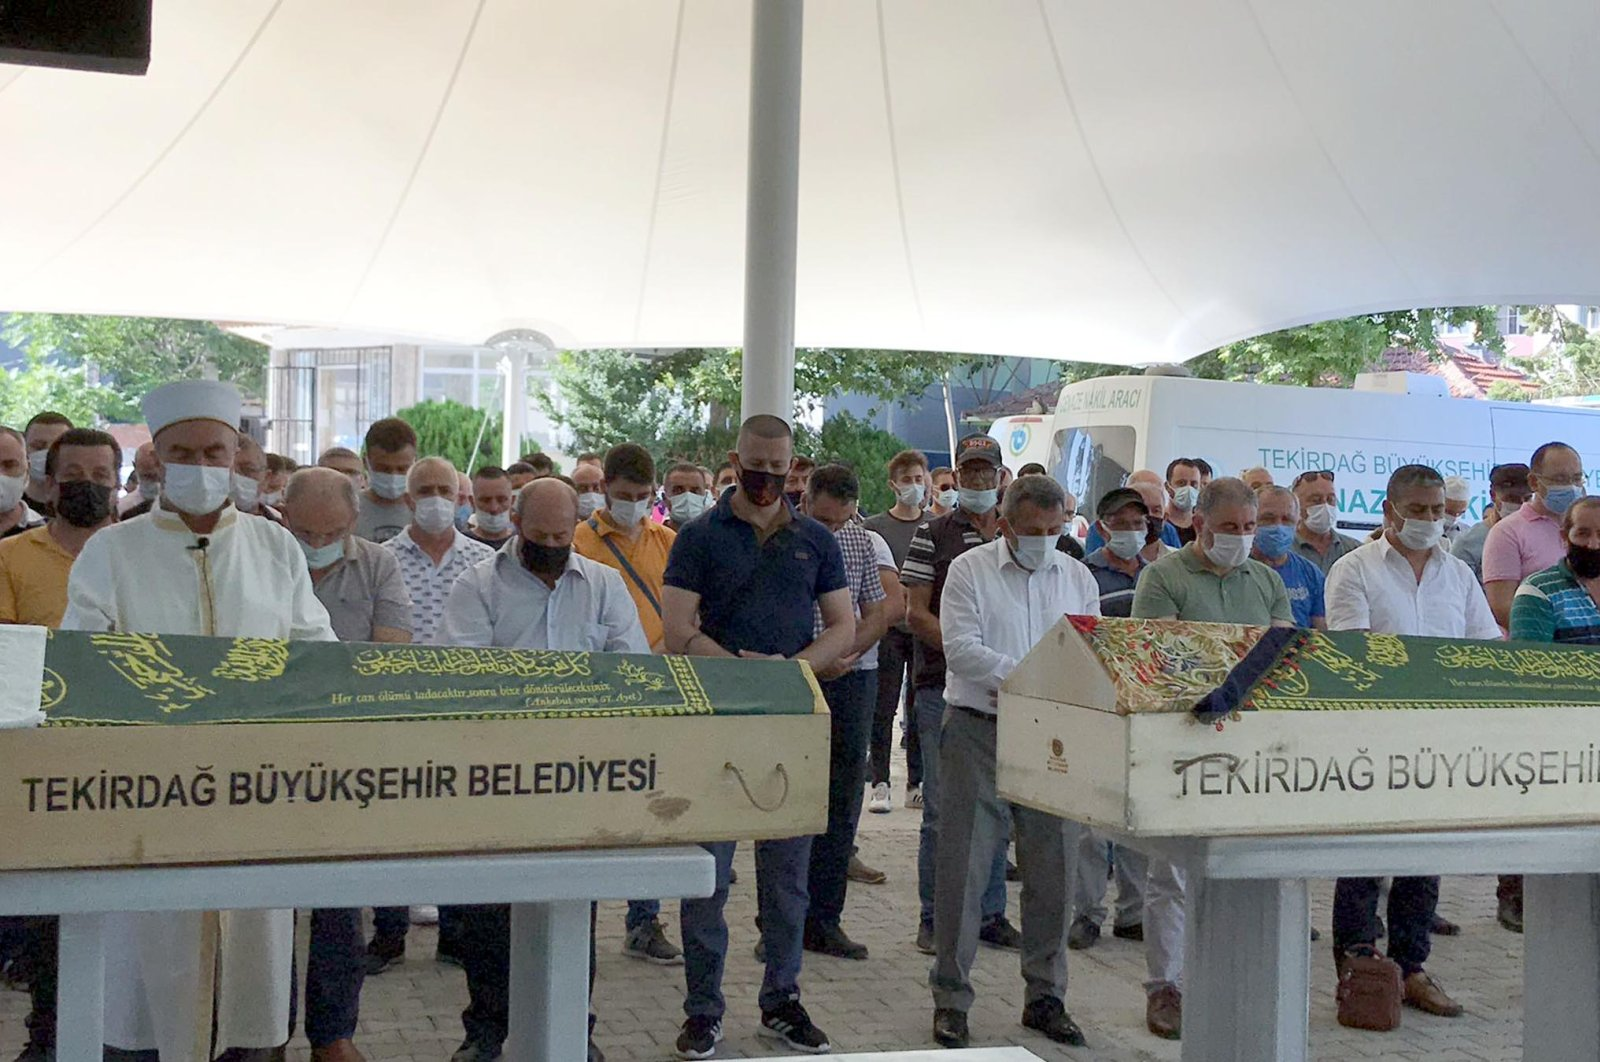 People attend a funeral for two victims of bootleg liquor poisoning, in Tekirdağ, northwestern Turkey, July 30, 2021. (DHA PHOTO)